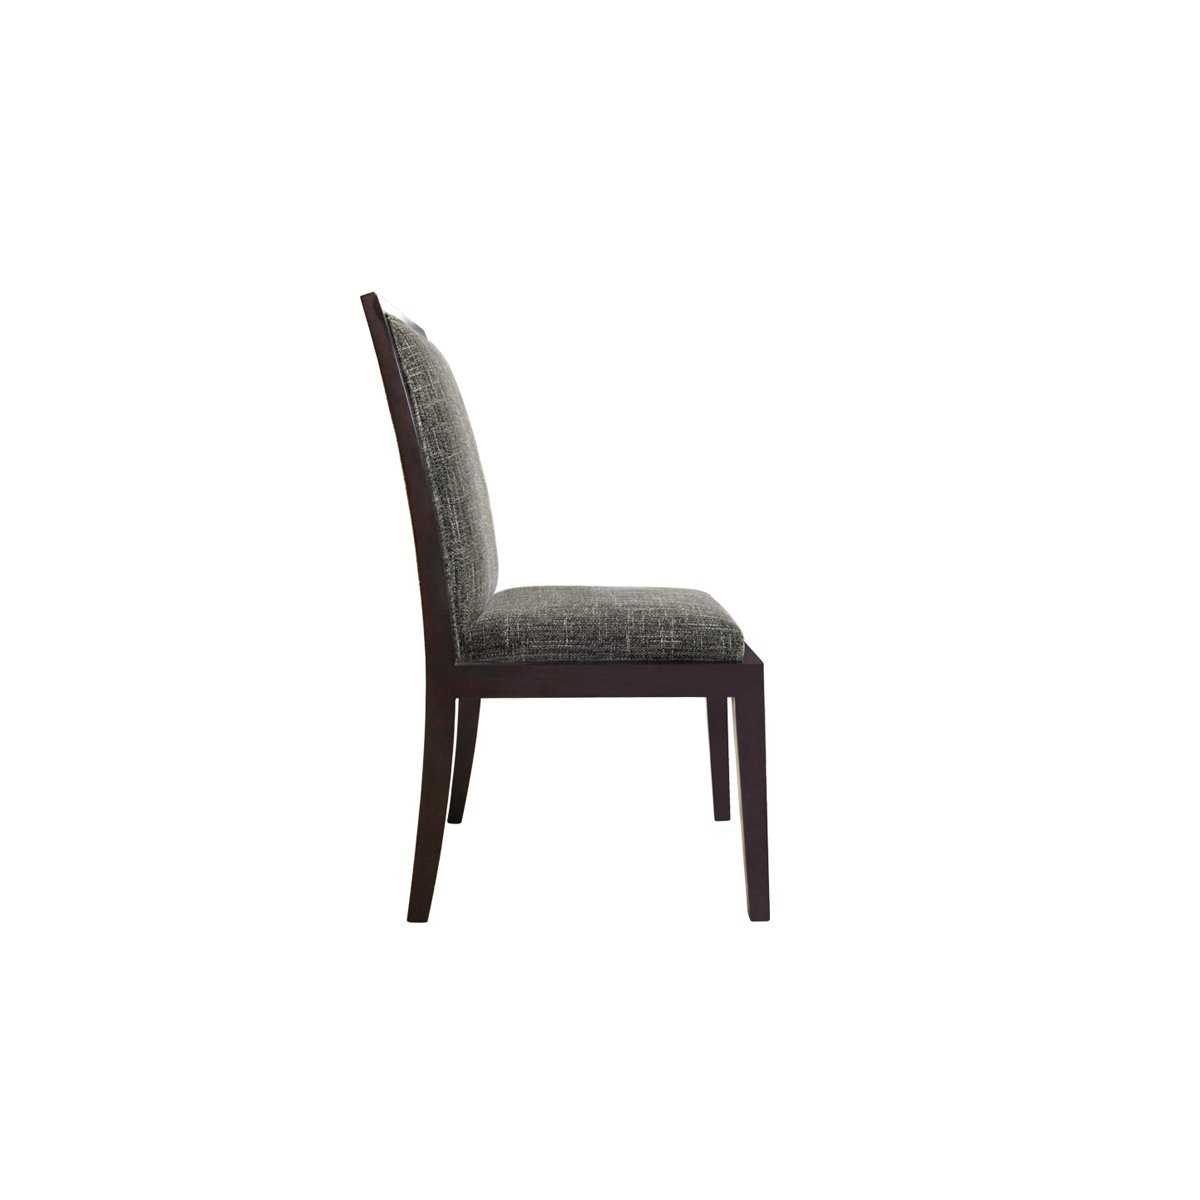 Dining room dining chairs our collections tribeca tribeca dining chair furnituretables and